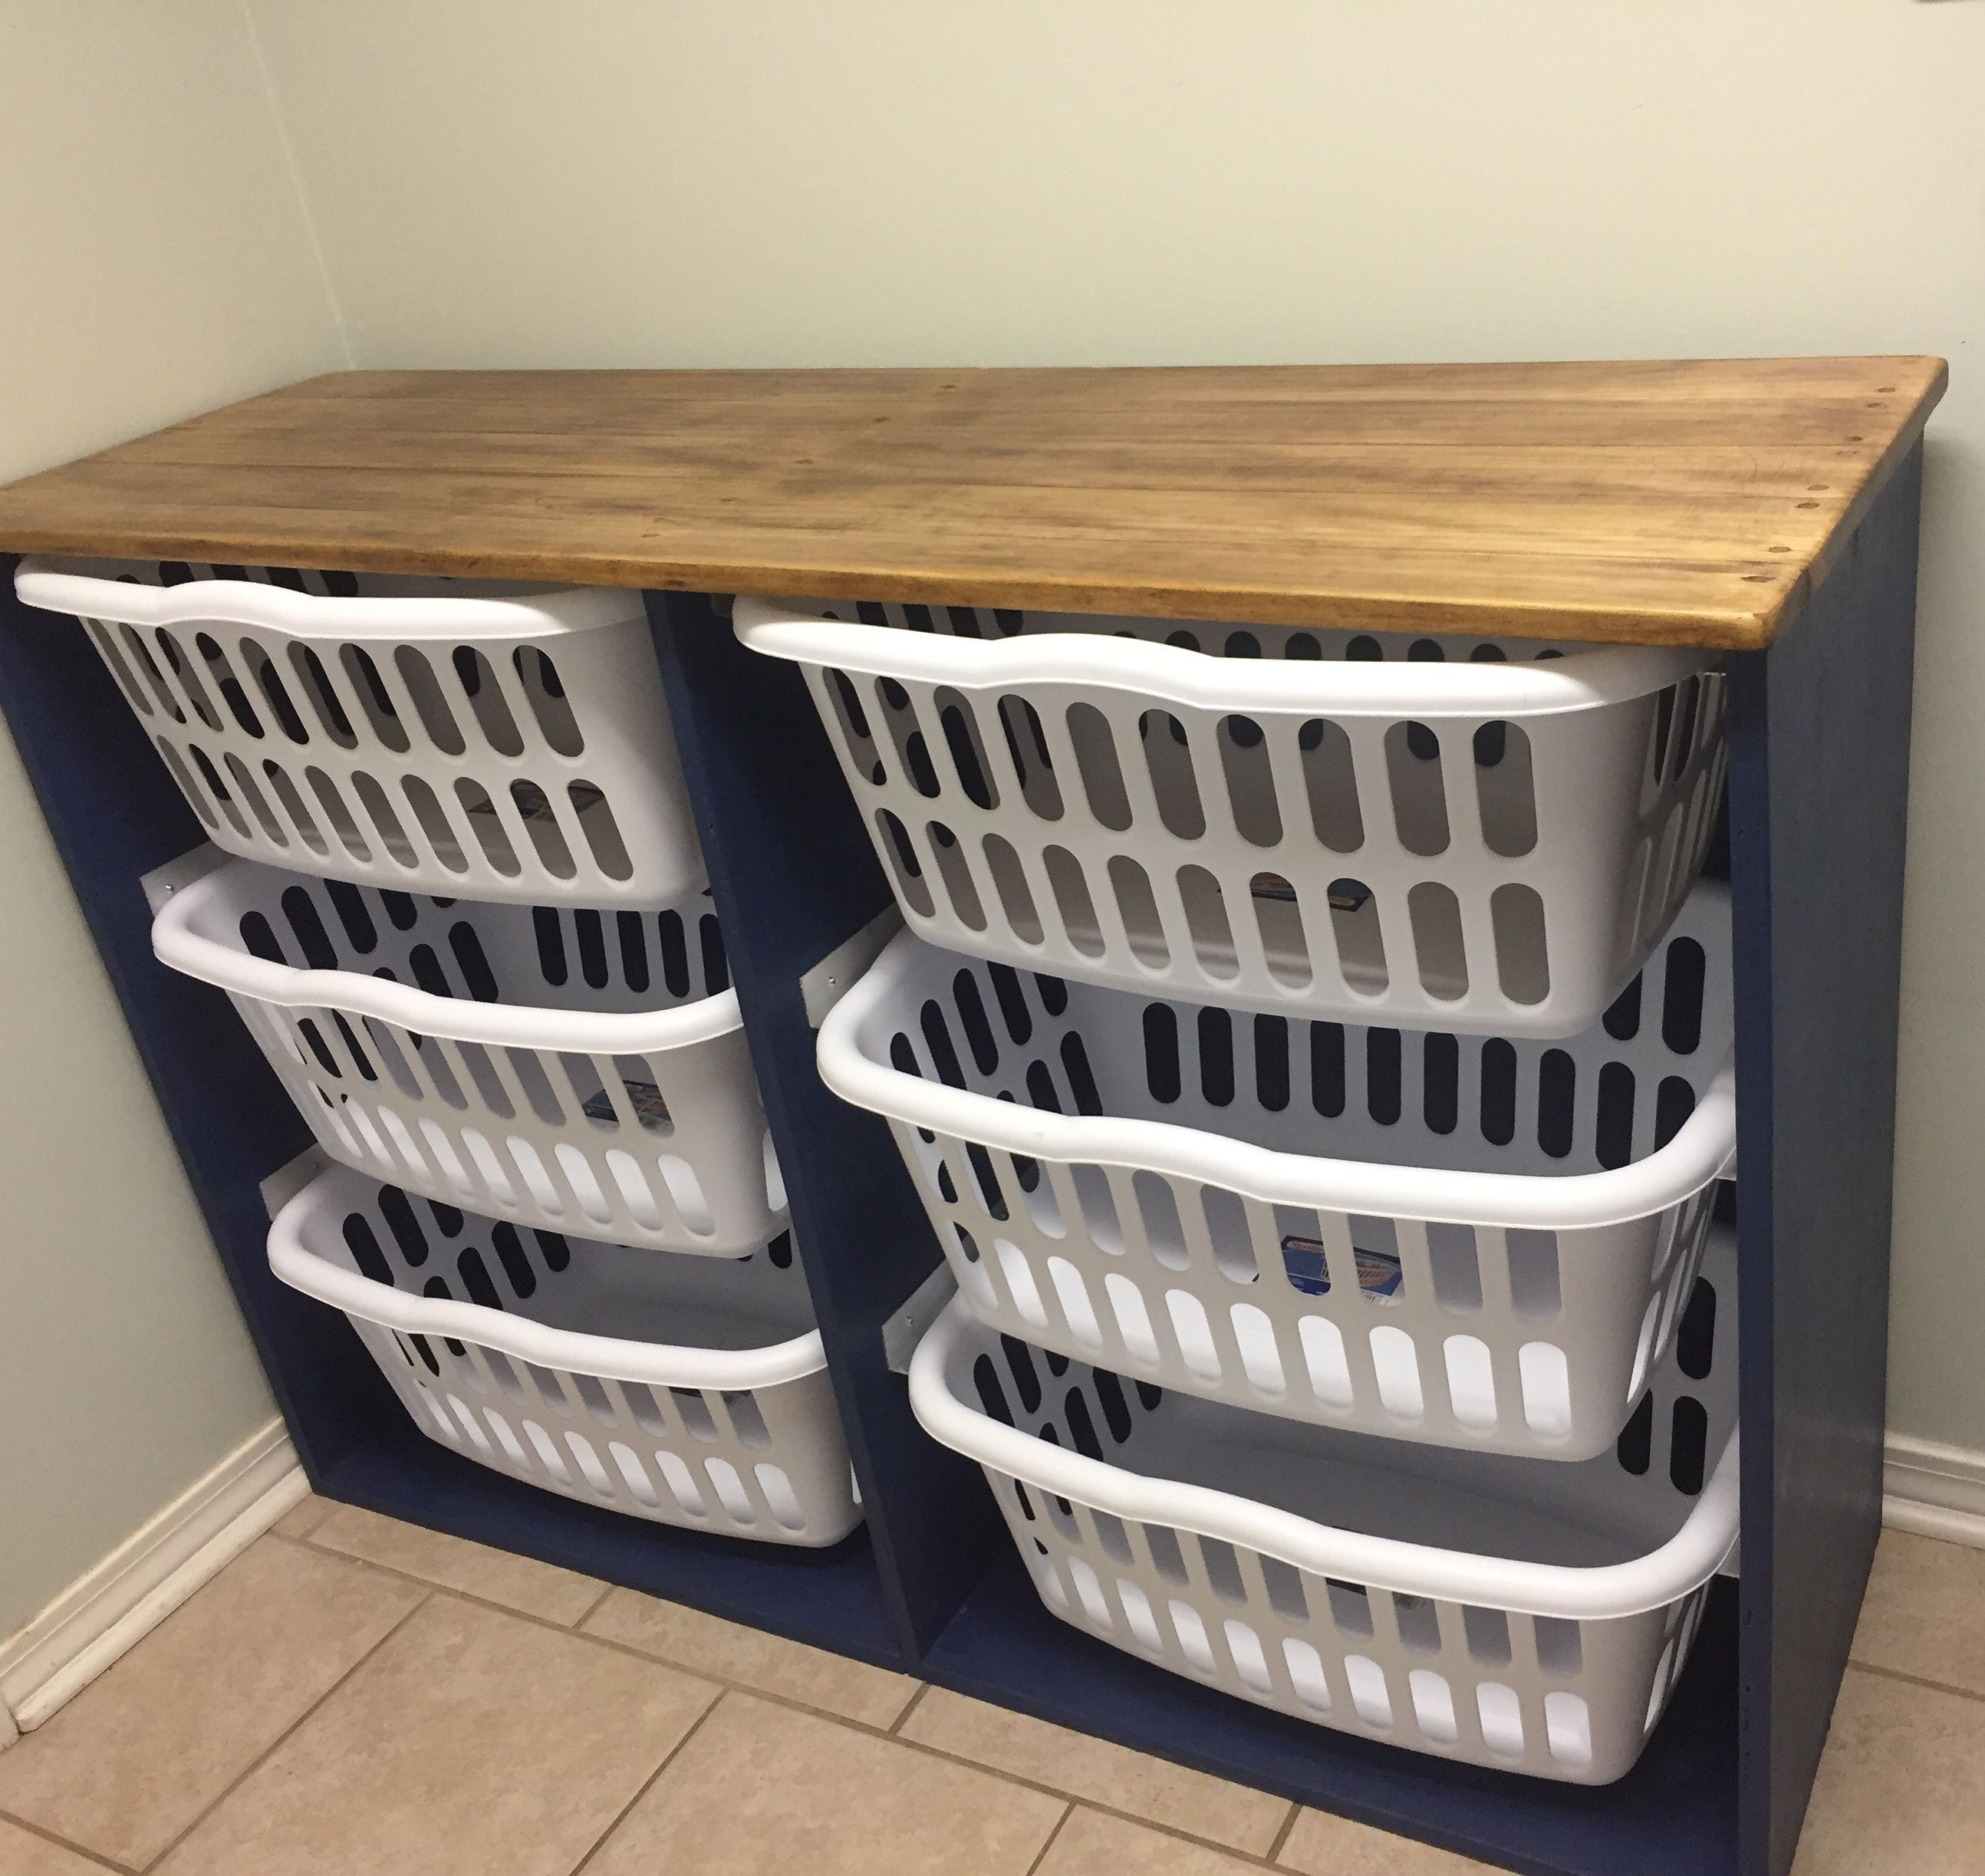 Ana White Laundry Station Diy Projects Laundry Room Diy